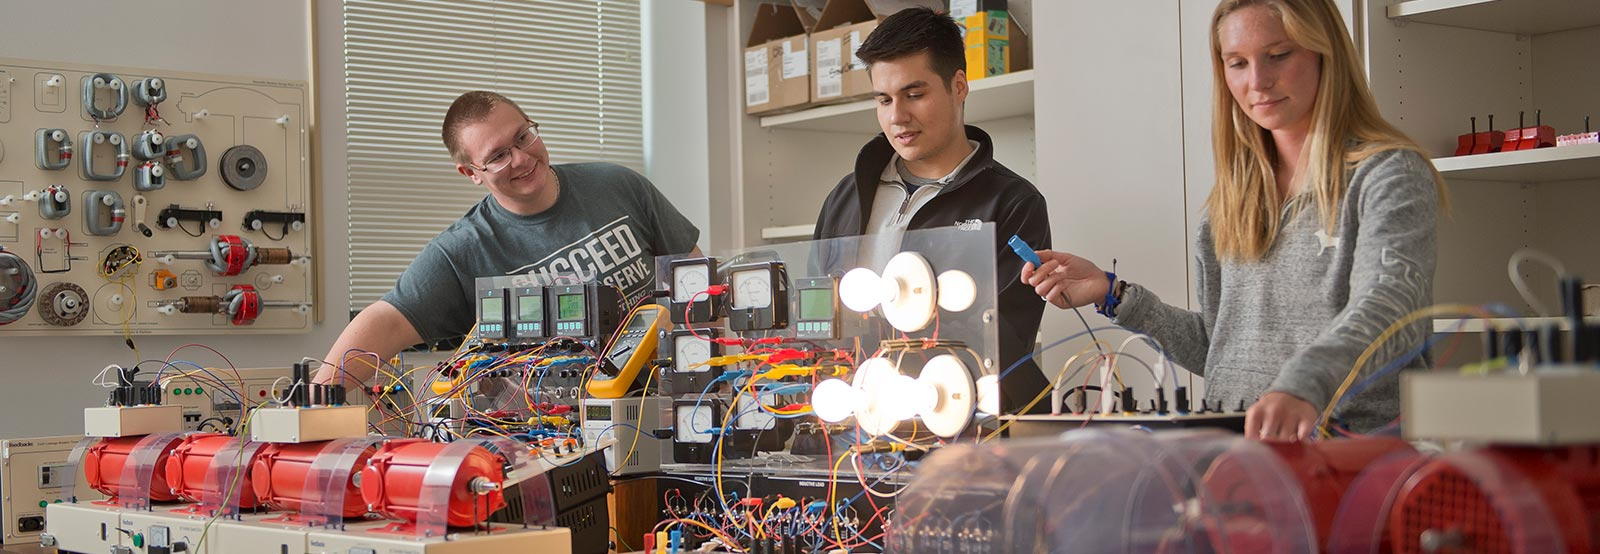 Students working in electrical engineering lab